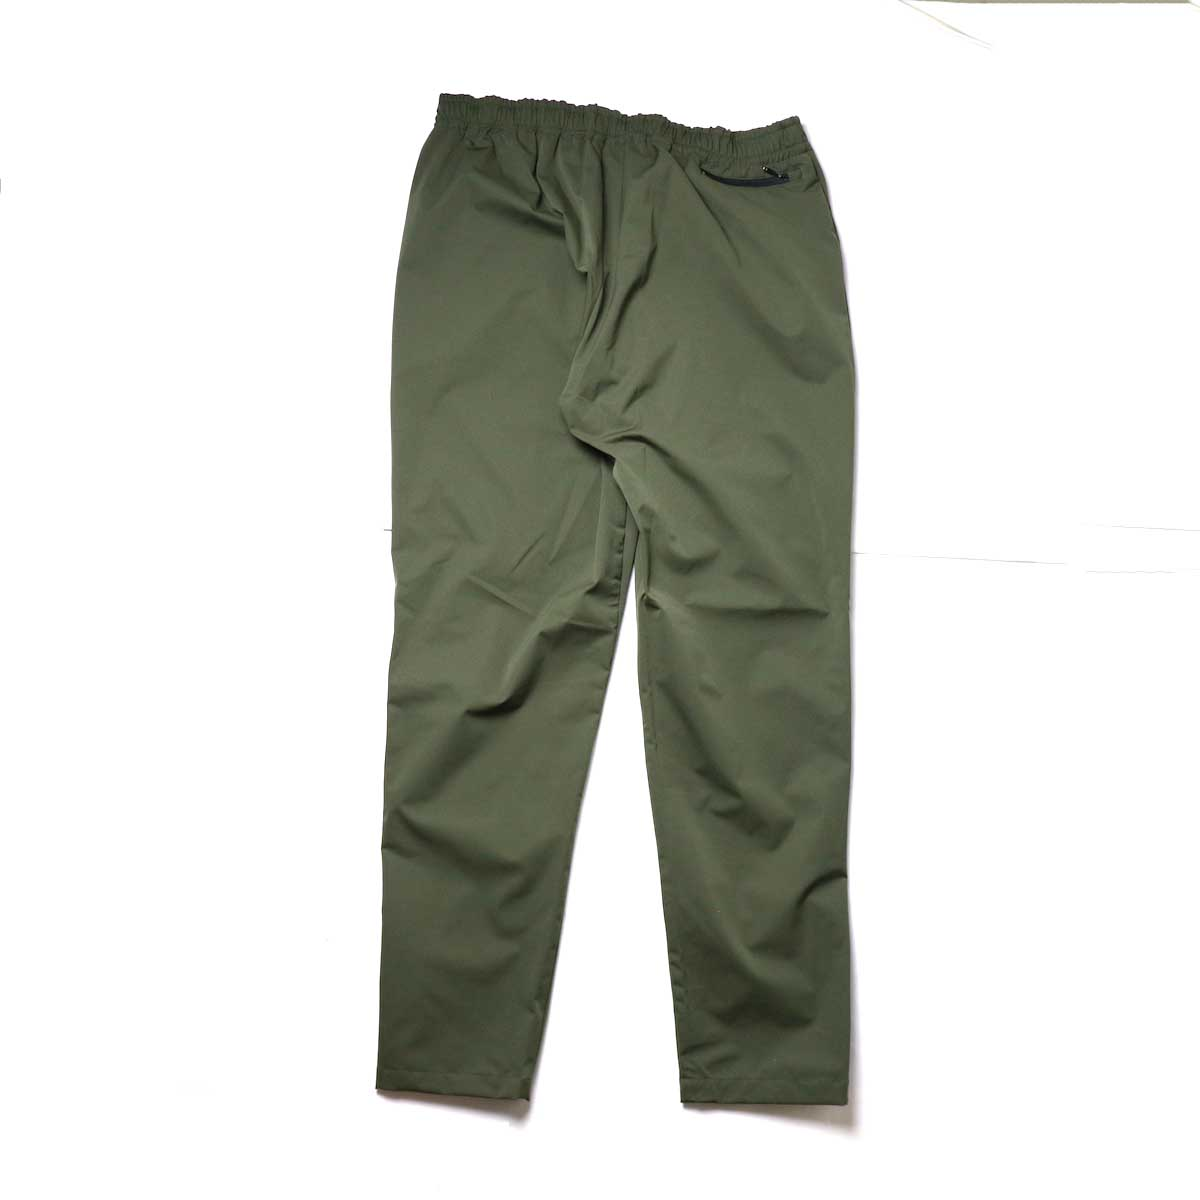 South2 West8 / Boulder Pant -Poly Stretch Twill (Green)背面